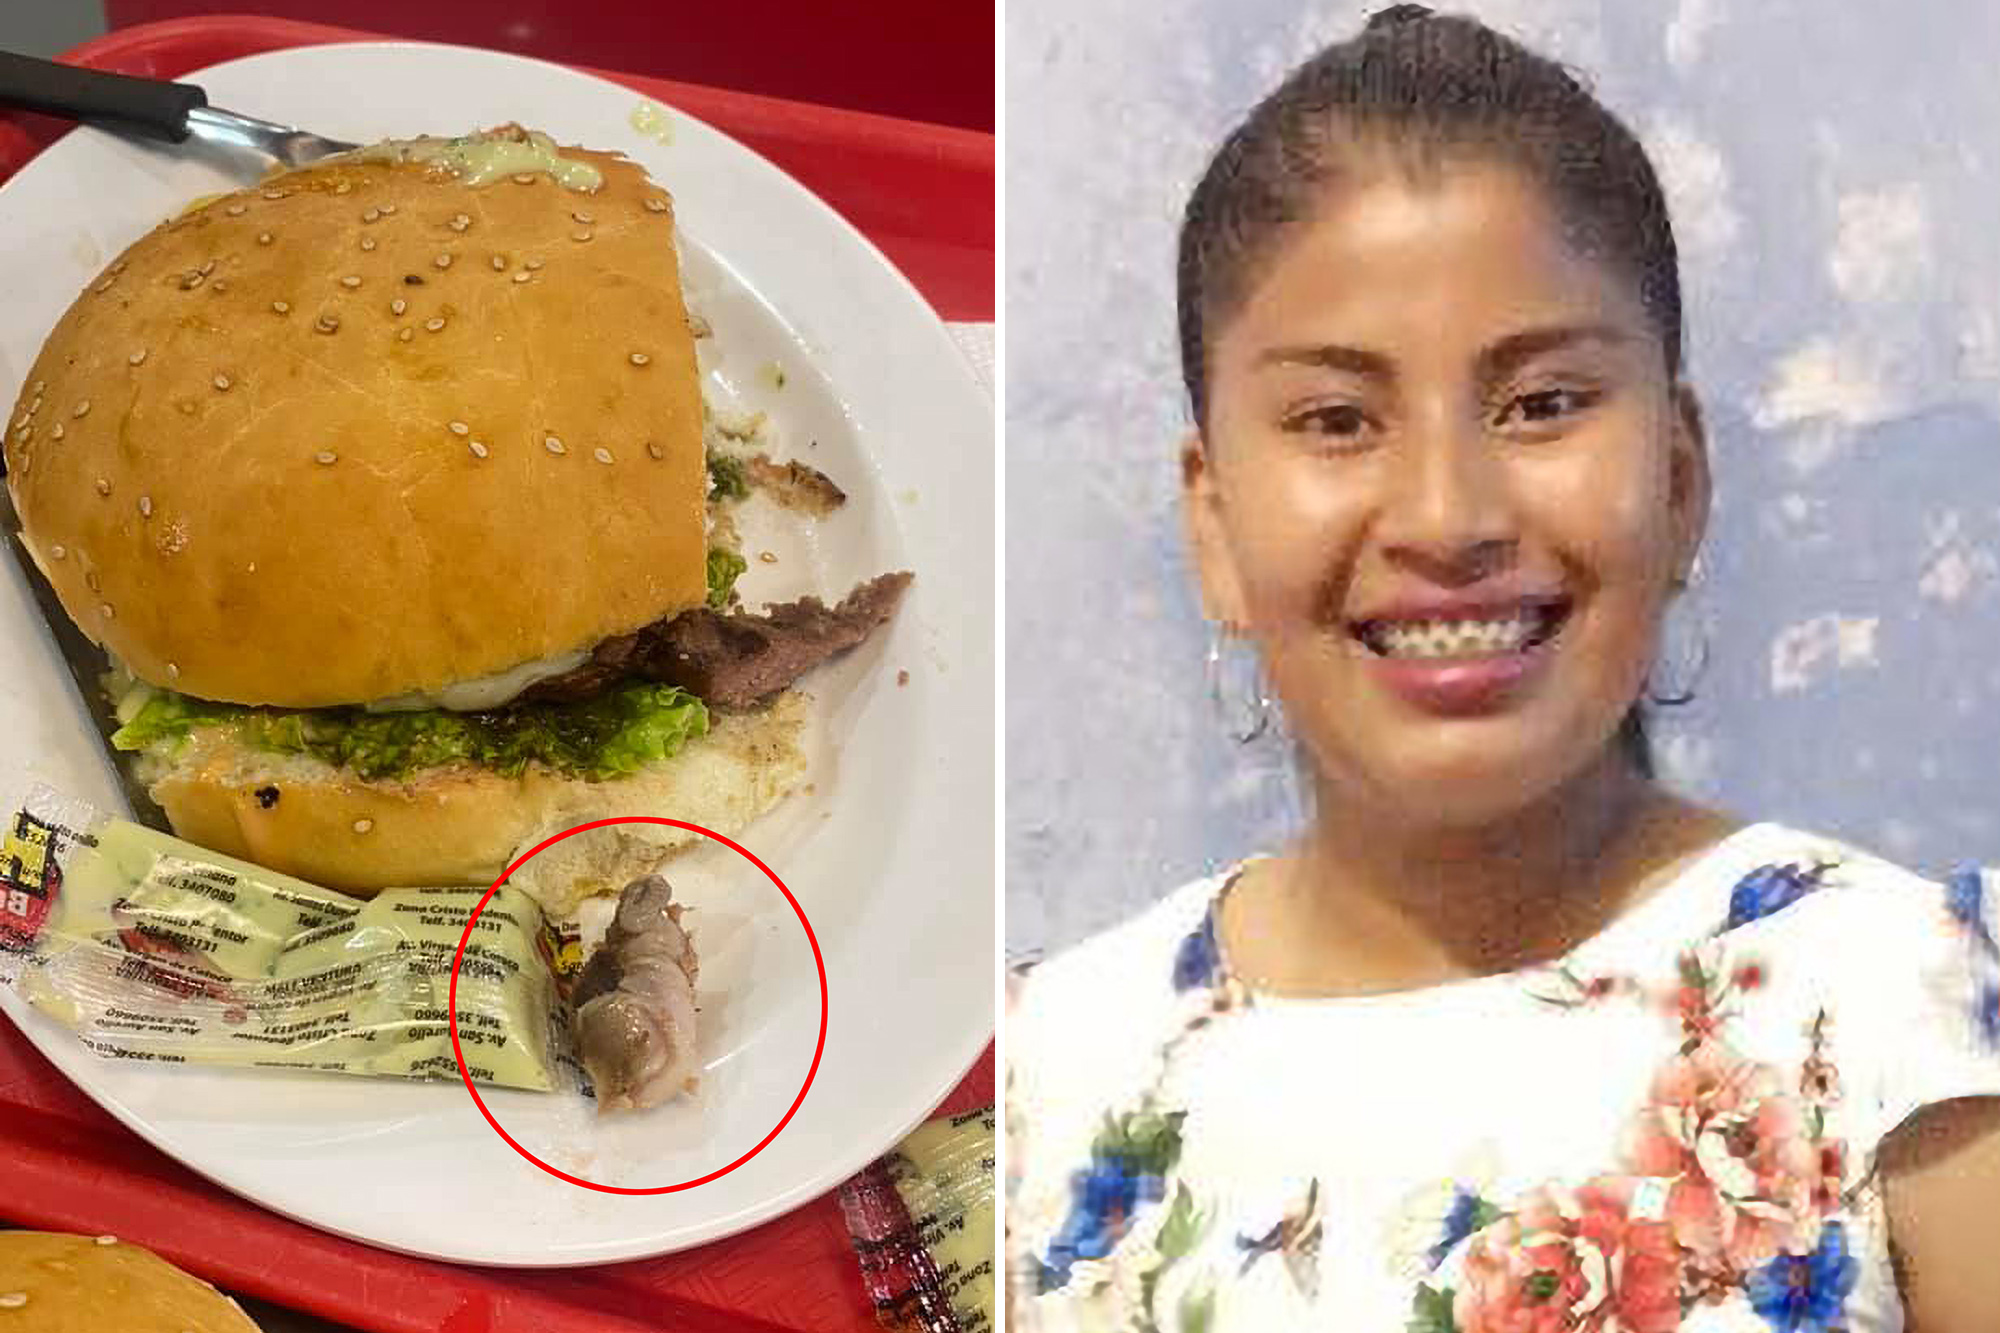 Bolivian fast-food customer Estefany Benitez was left shocked and disgusted after she allegedly bit into a burger and ended up chomping a rotting human finger.